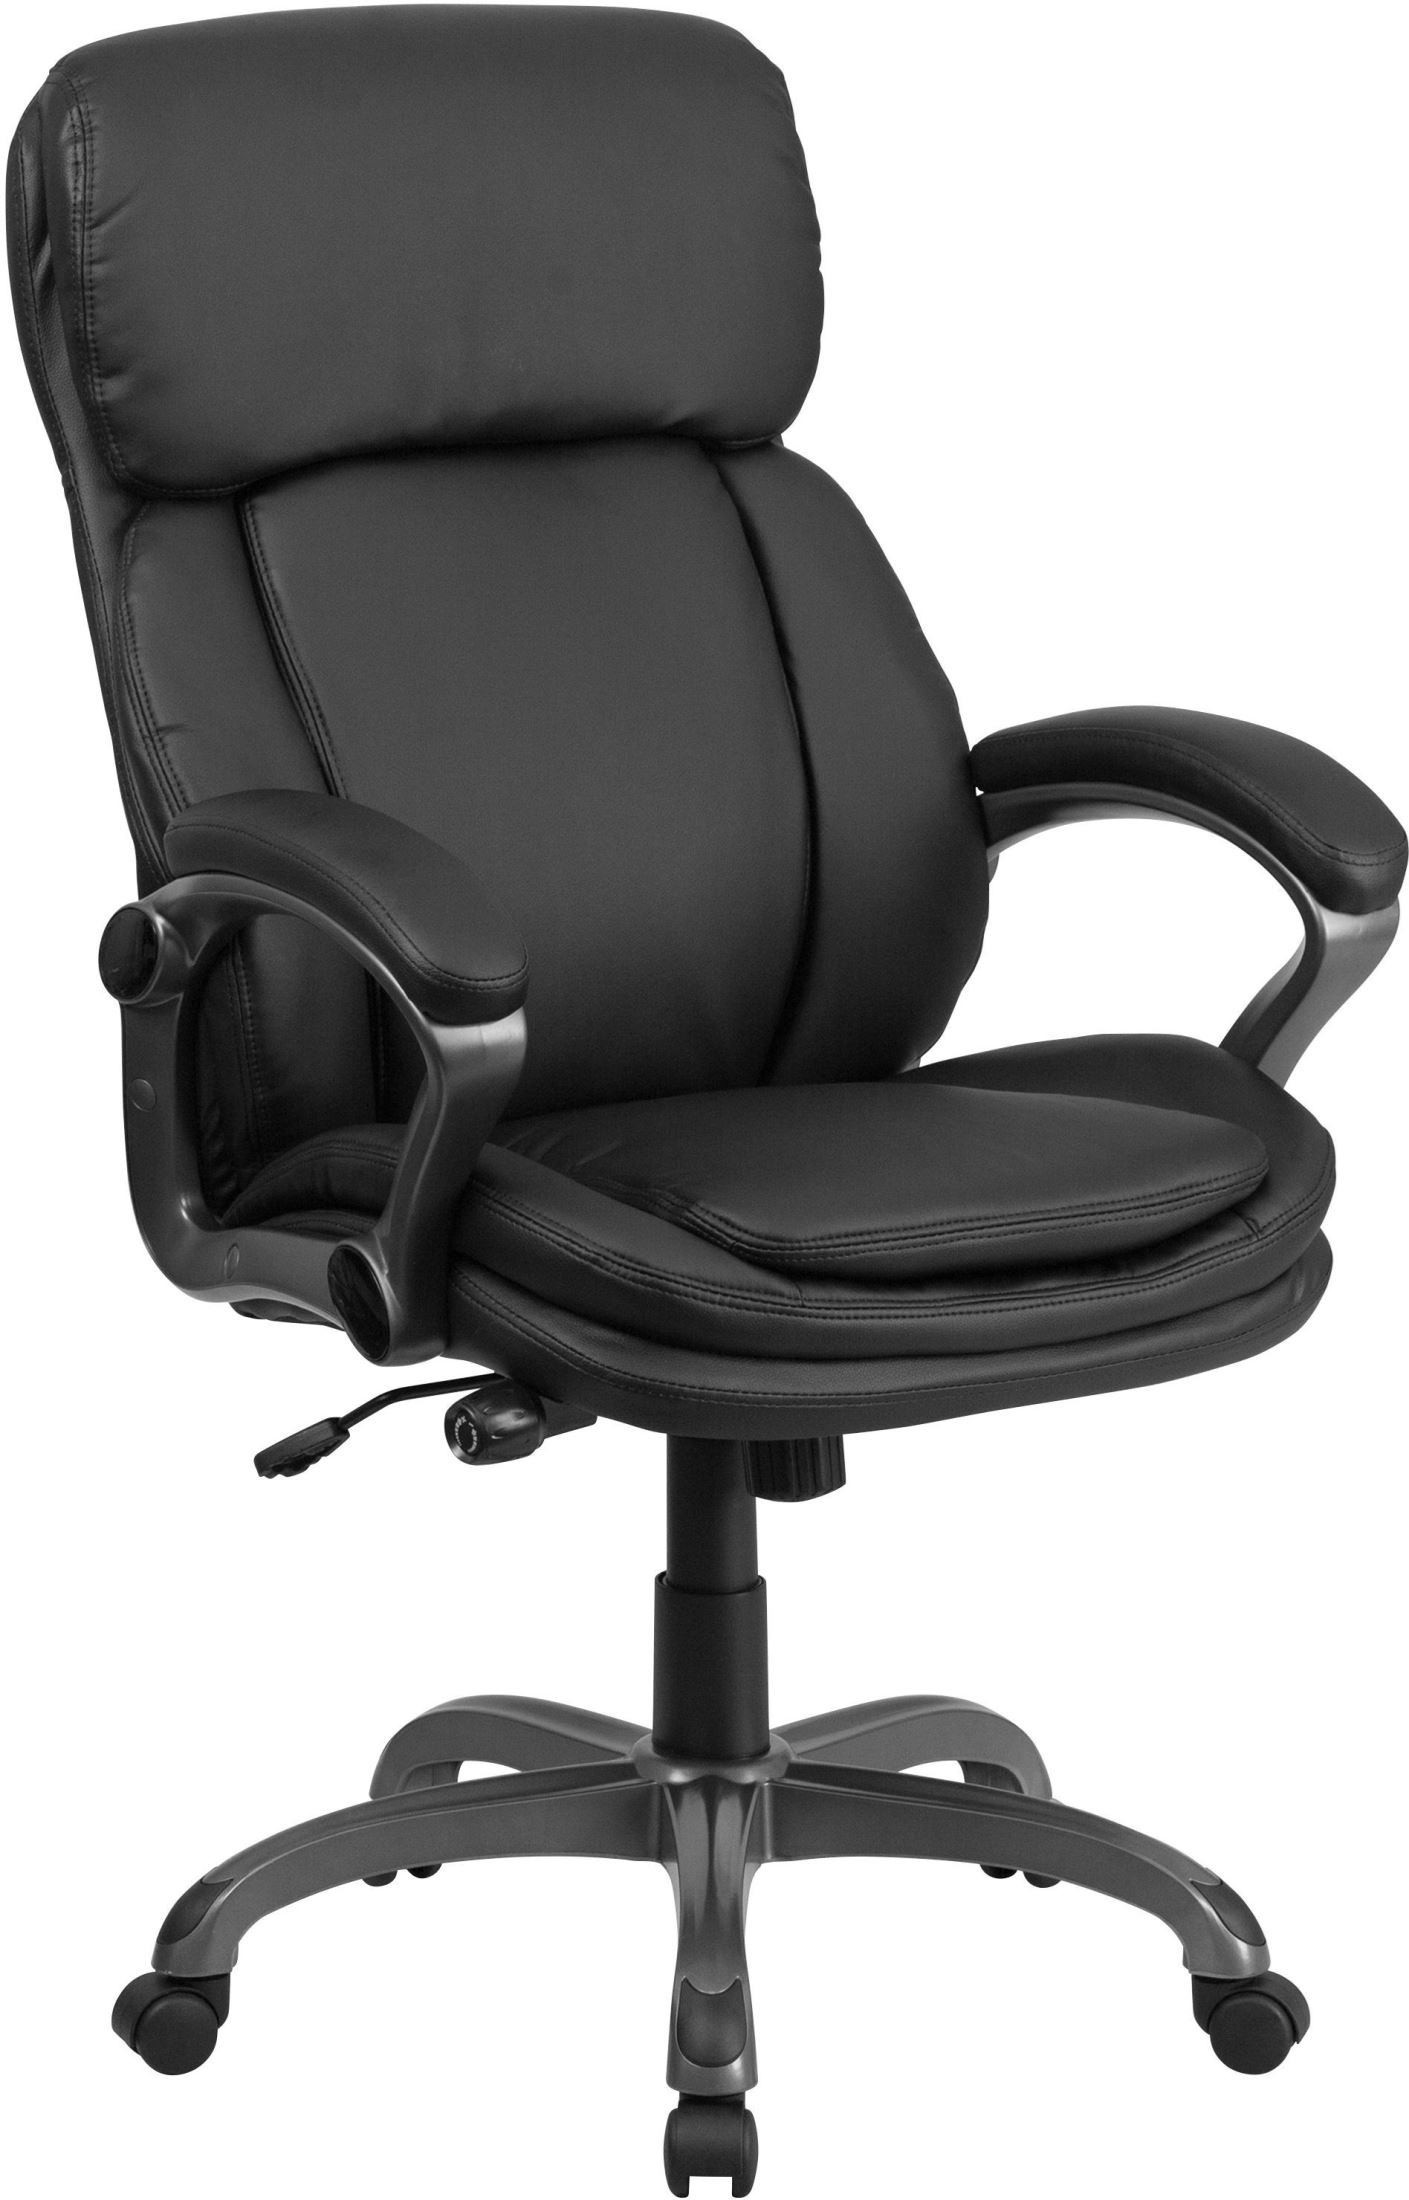 Tall Office Chair Tall Black Executive Swivel Office Chair With Lumbar